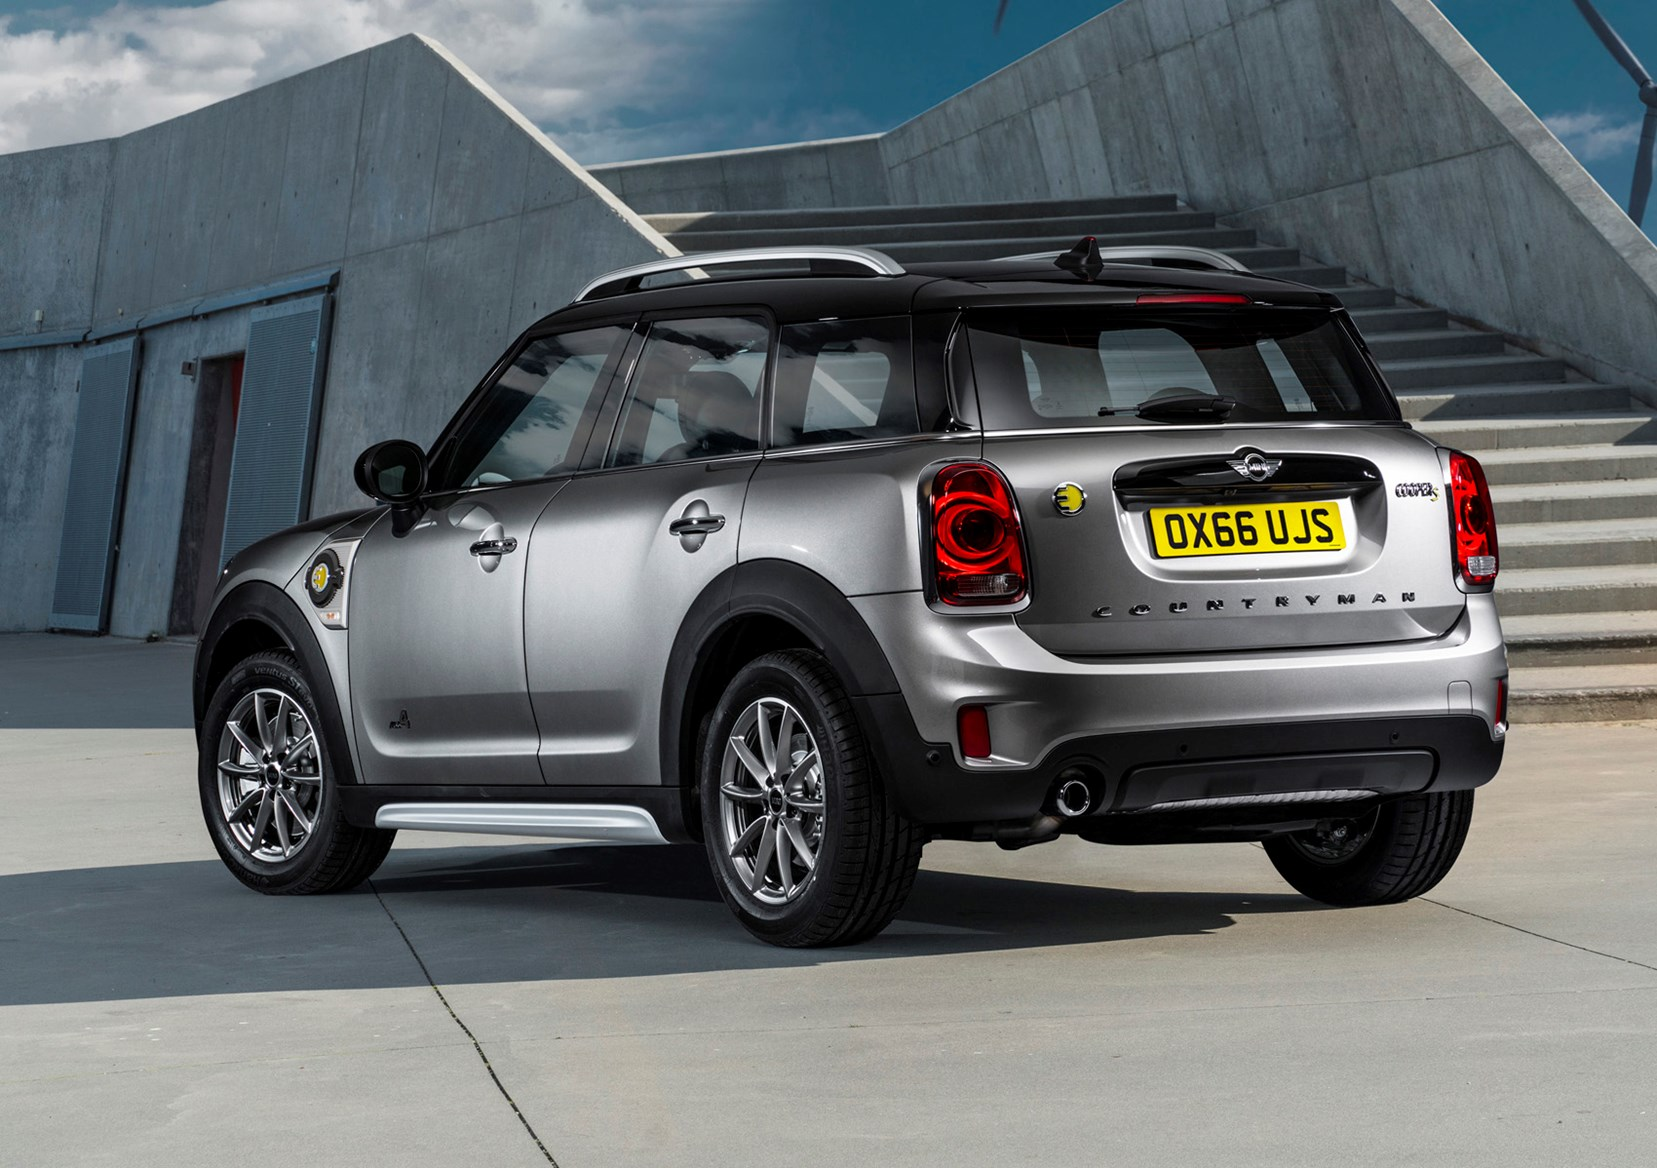 watt s the price mini cooper s e countryman all4 to cost from 31 585 parkers. Black Bedroom Furniture Sets. Home Design Ideas